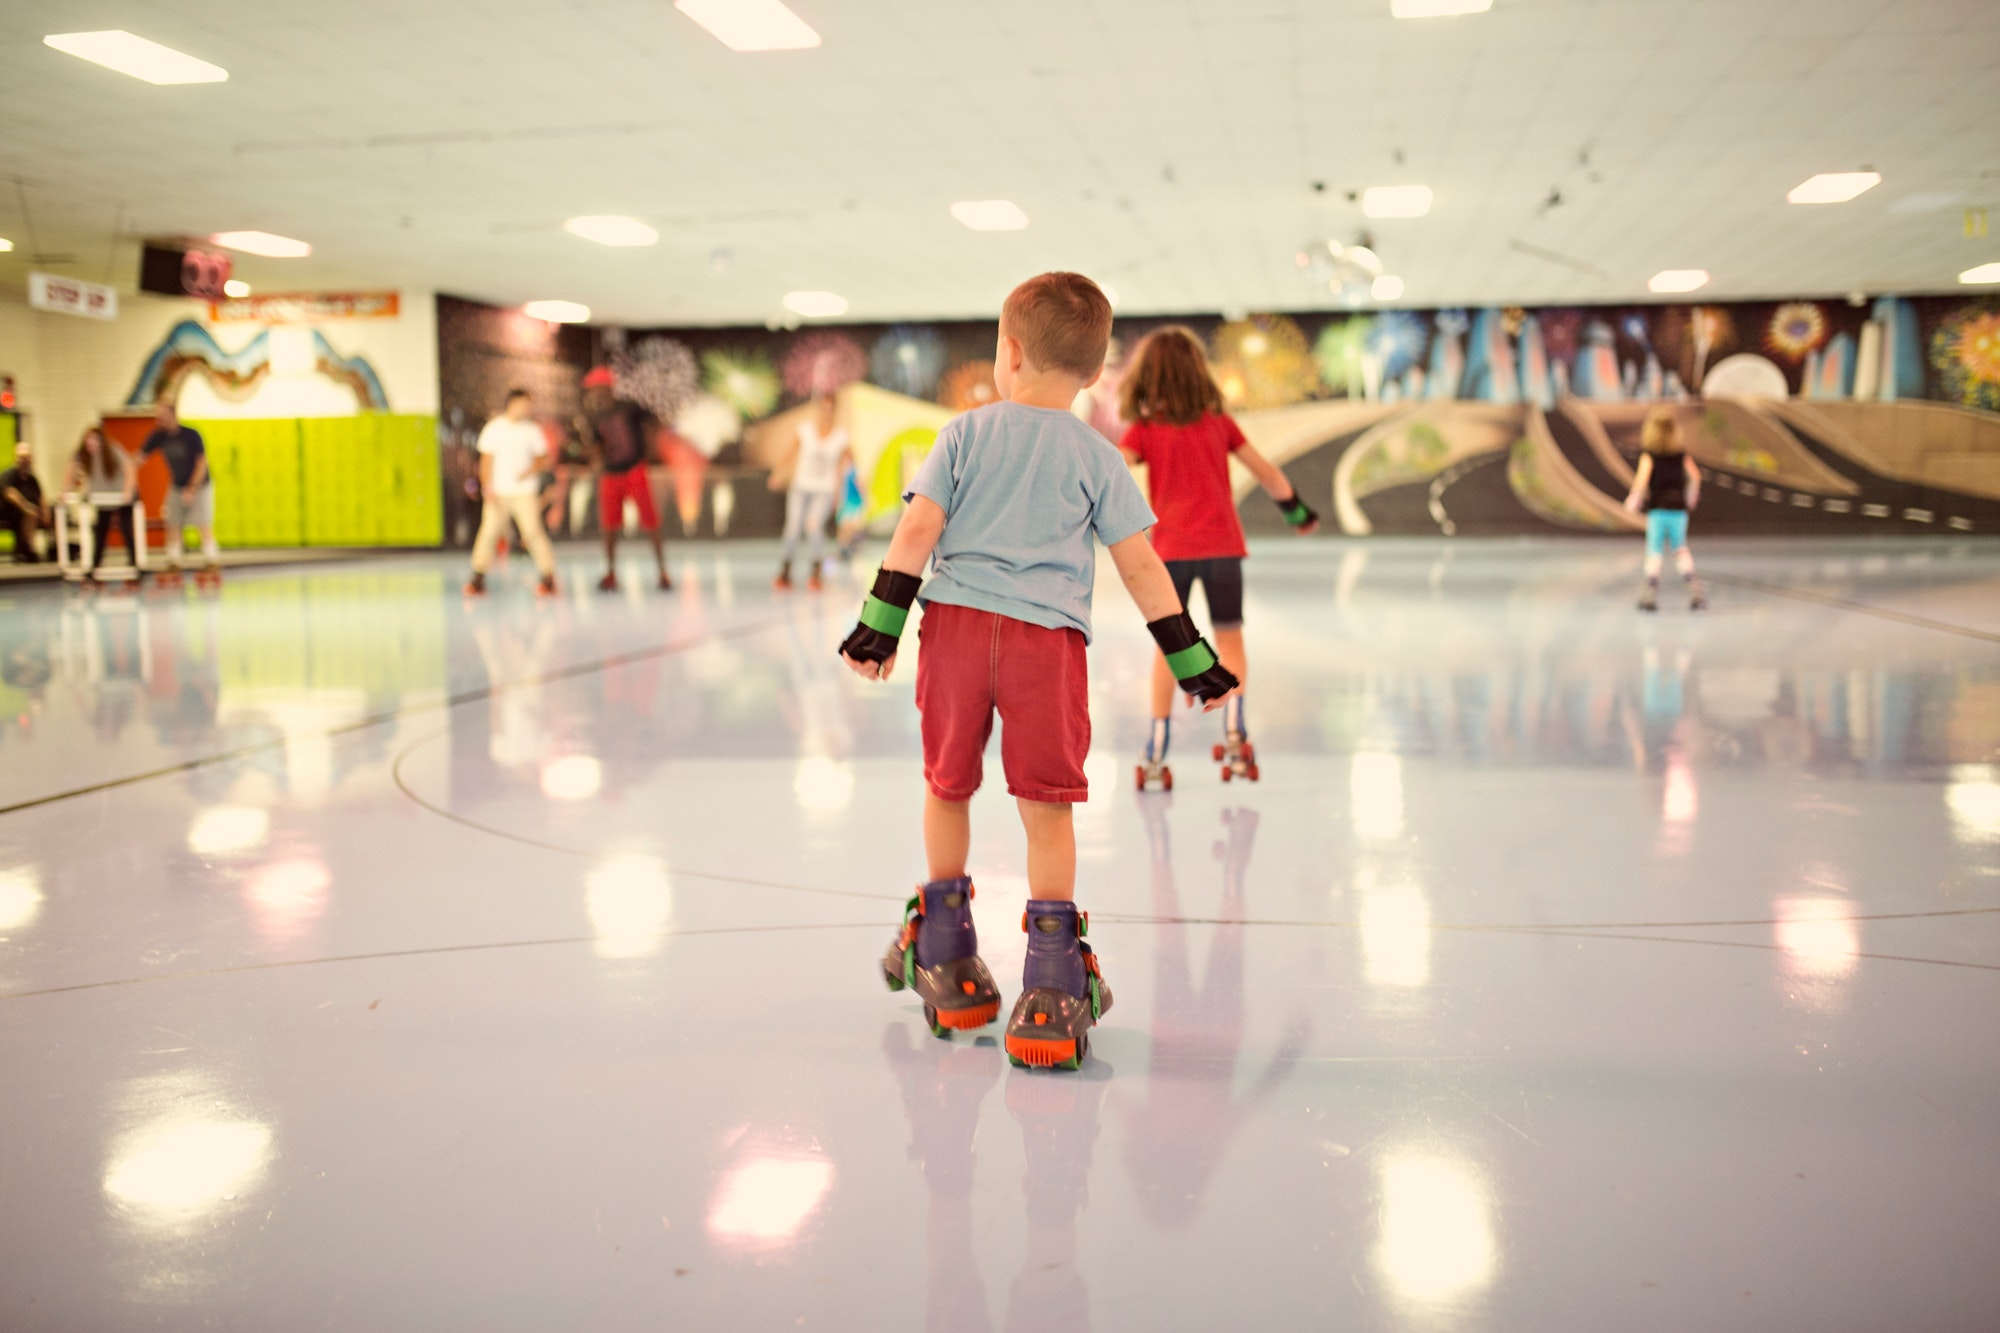 Family roller skating at a roller rink